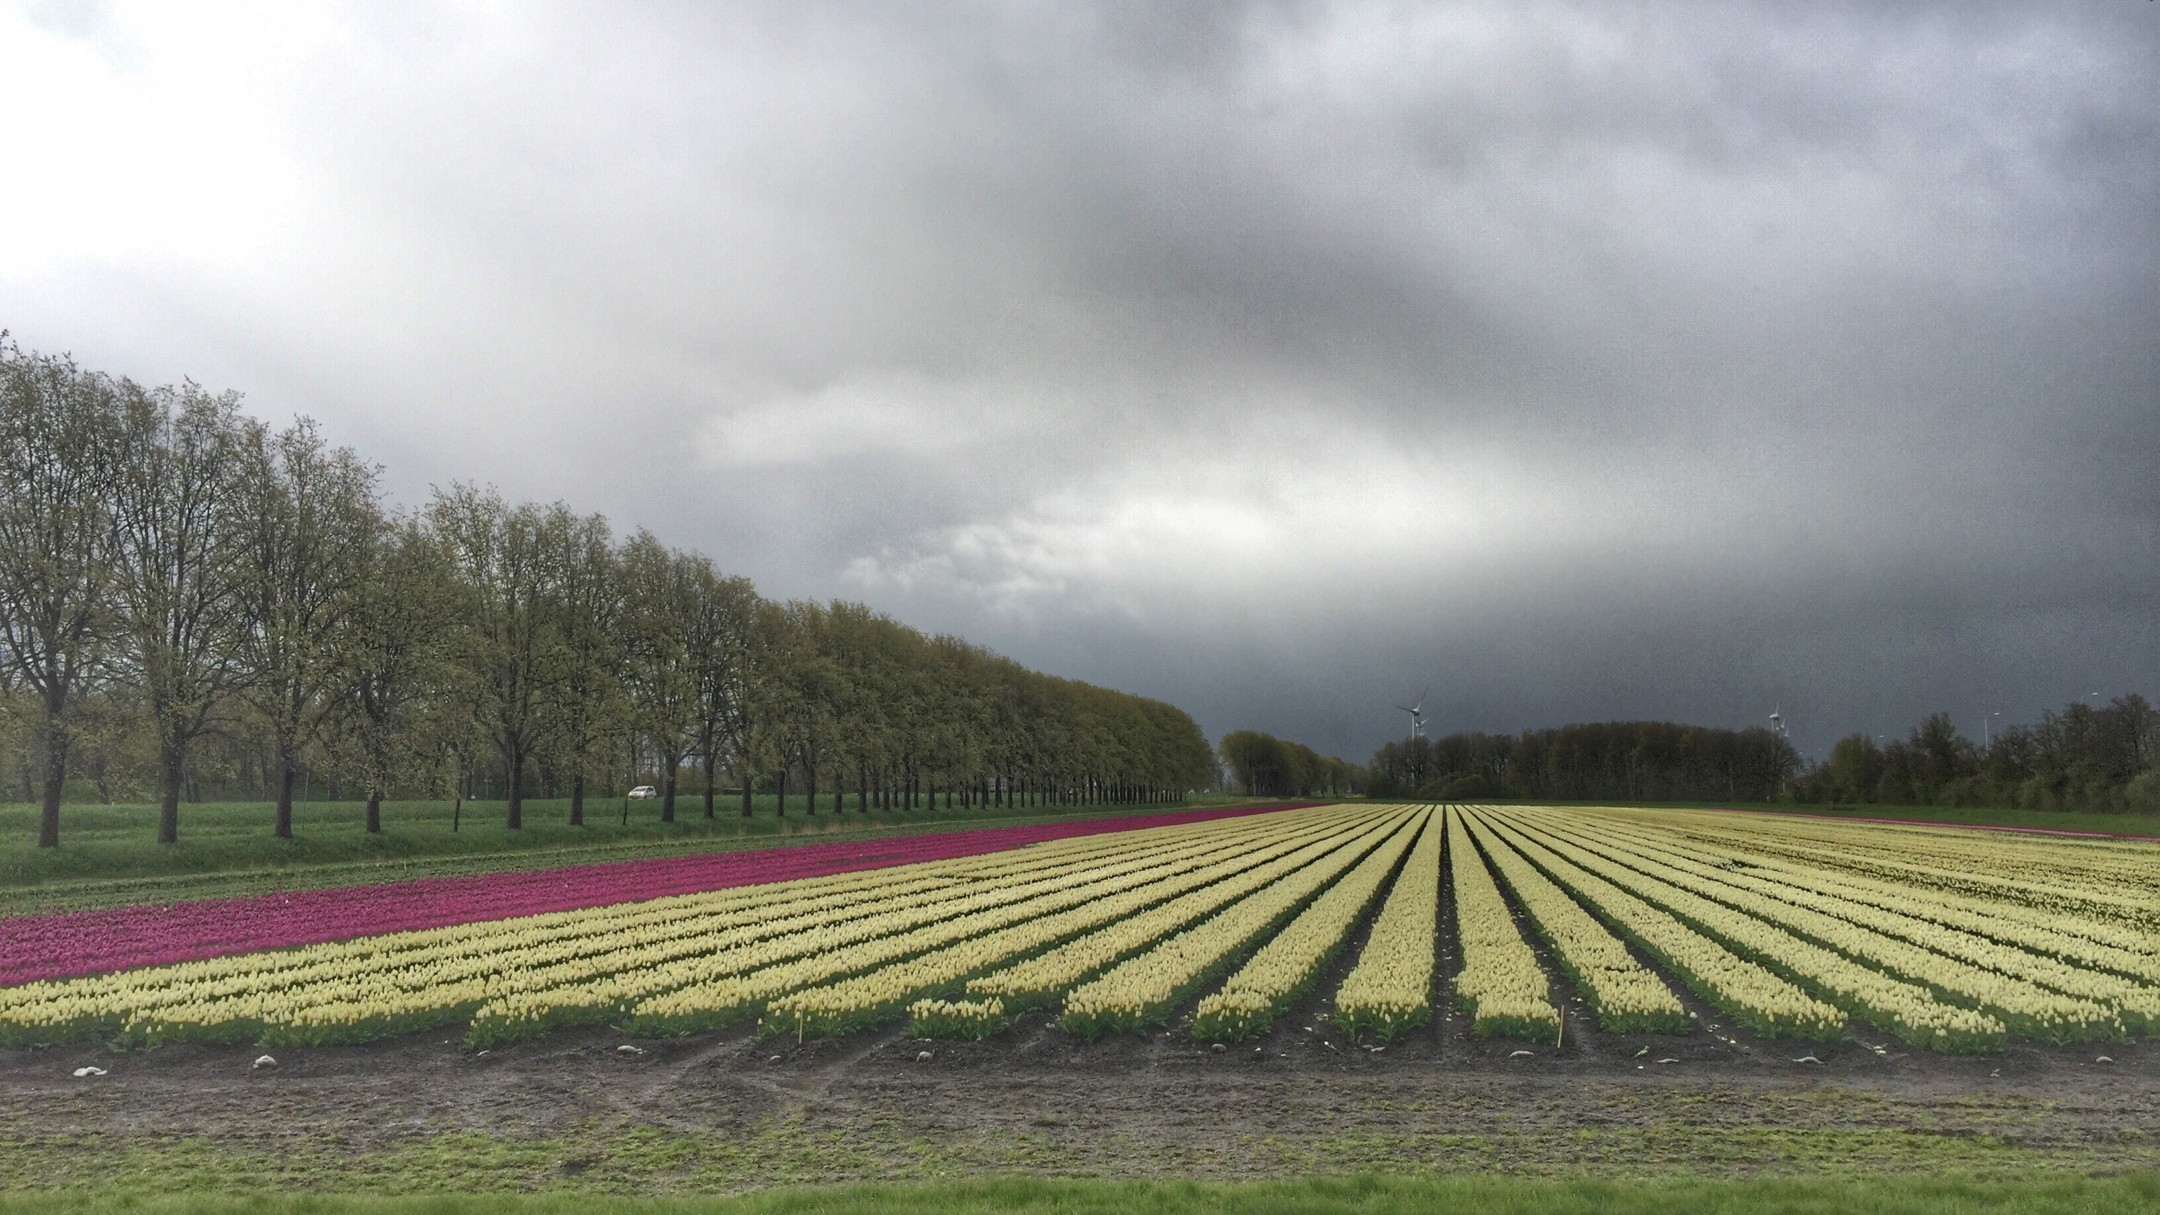 Tukip fields in Holland